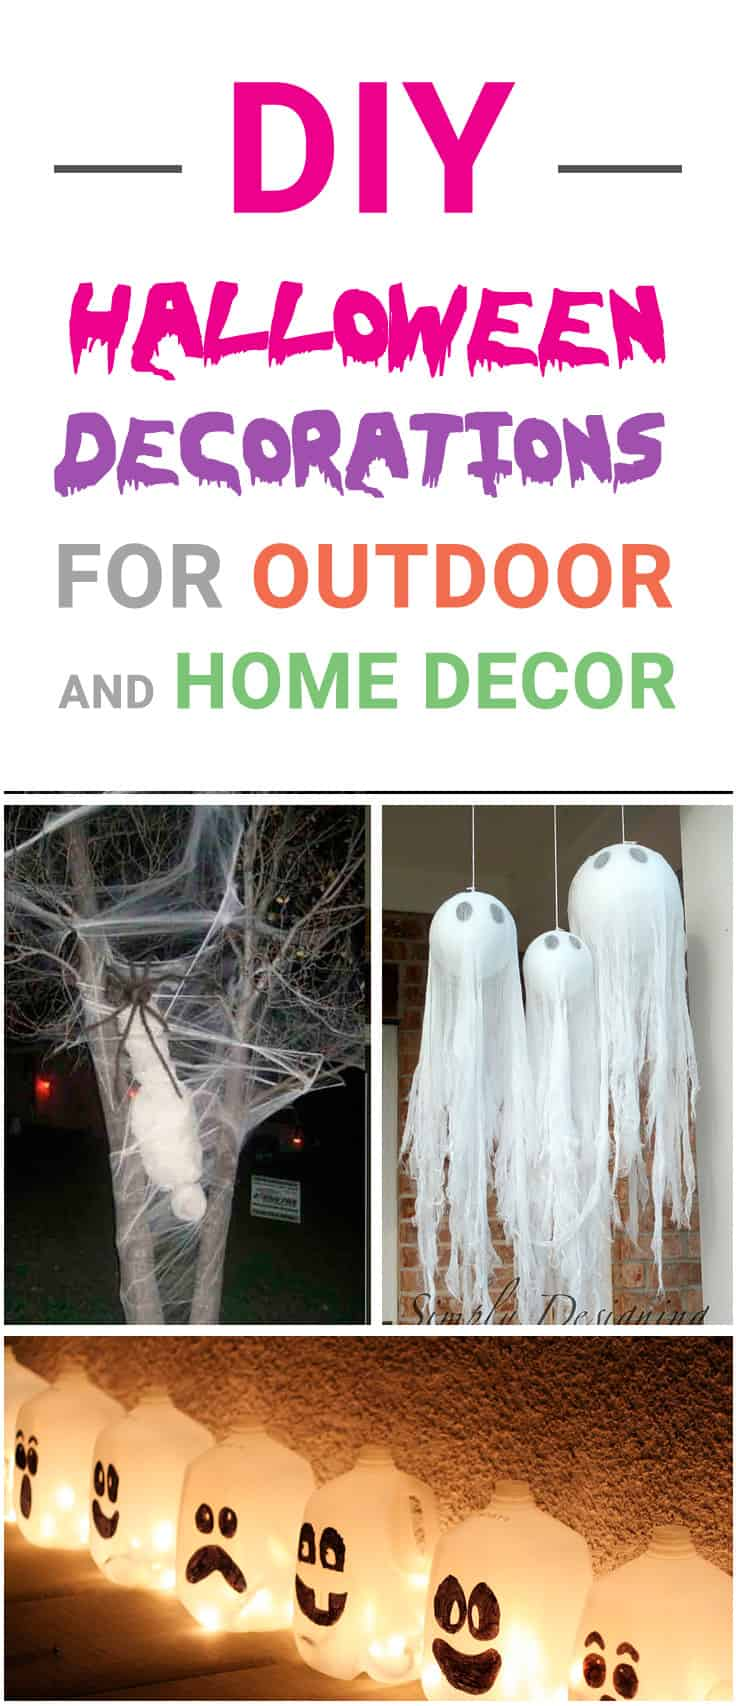 Best DIY Outdoor Halloween Decorations for 2018! Check these Halloween projects for inspiration and make our yard and home decor amazing for a Halloween party!